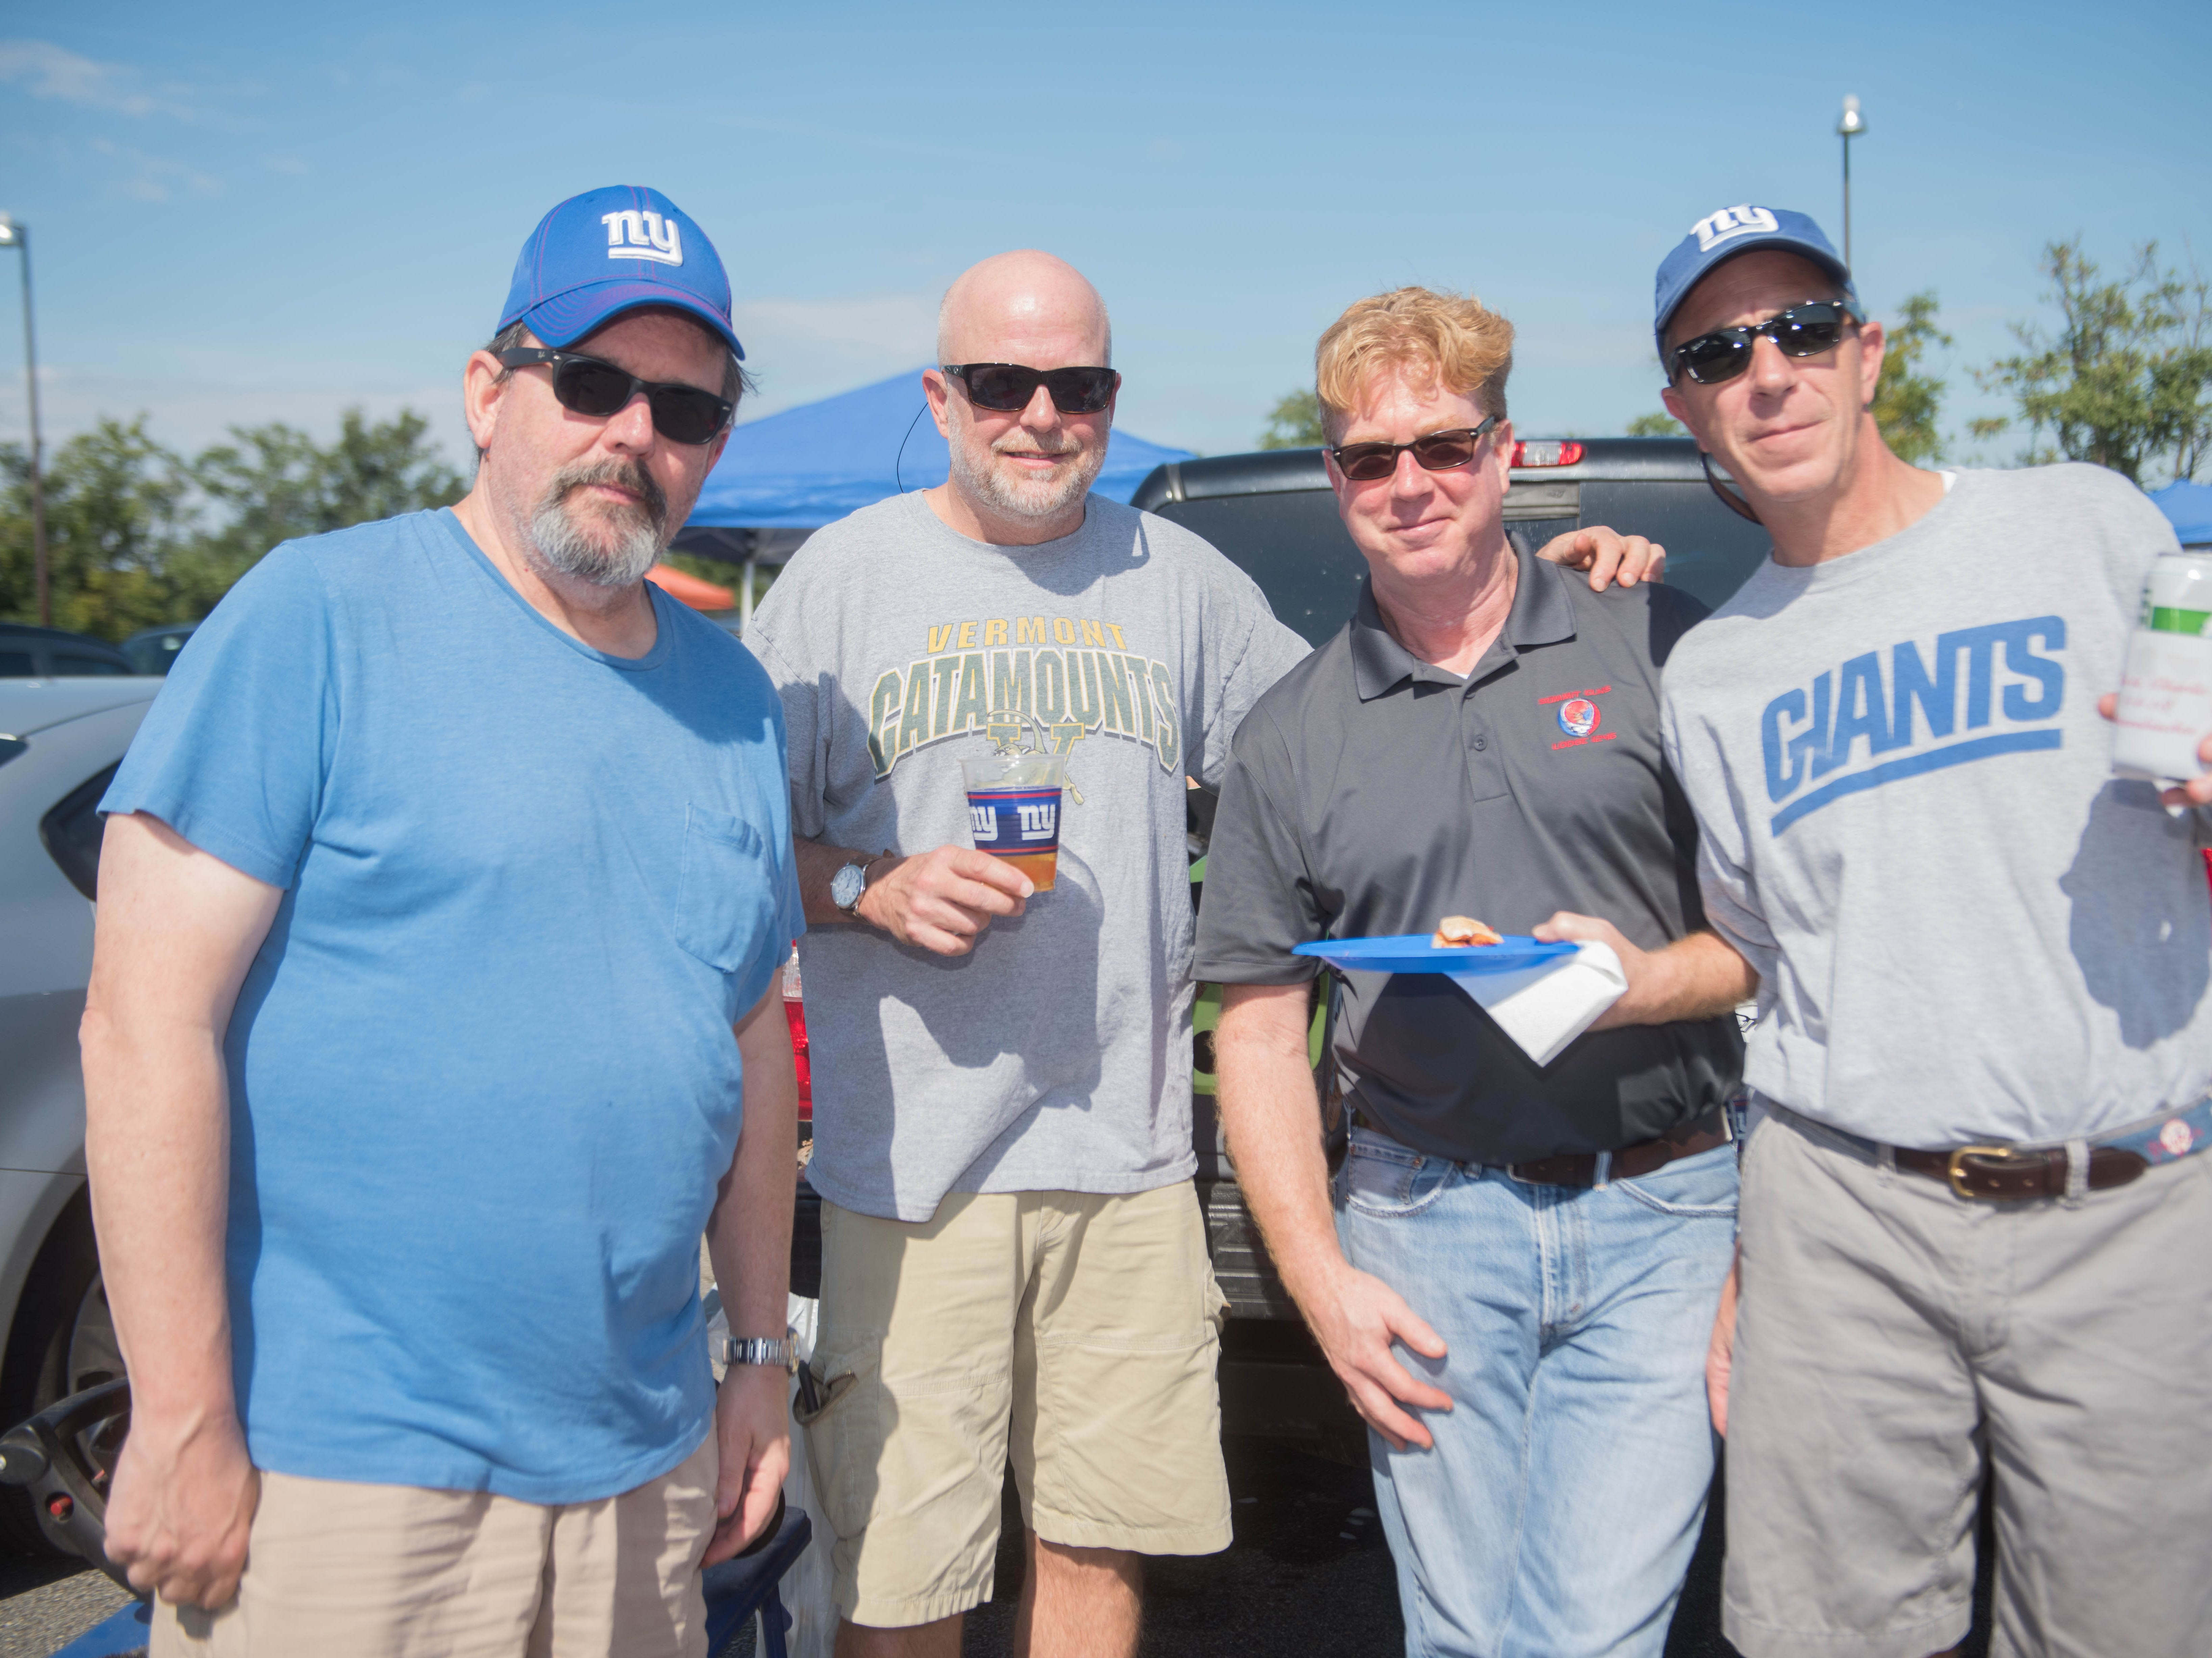 Michael, Chuck, Toby and Grant at the Giants vs. Saints tailgate party, Sunday, Sept. 30, 2018.